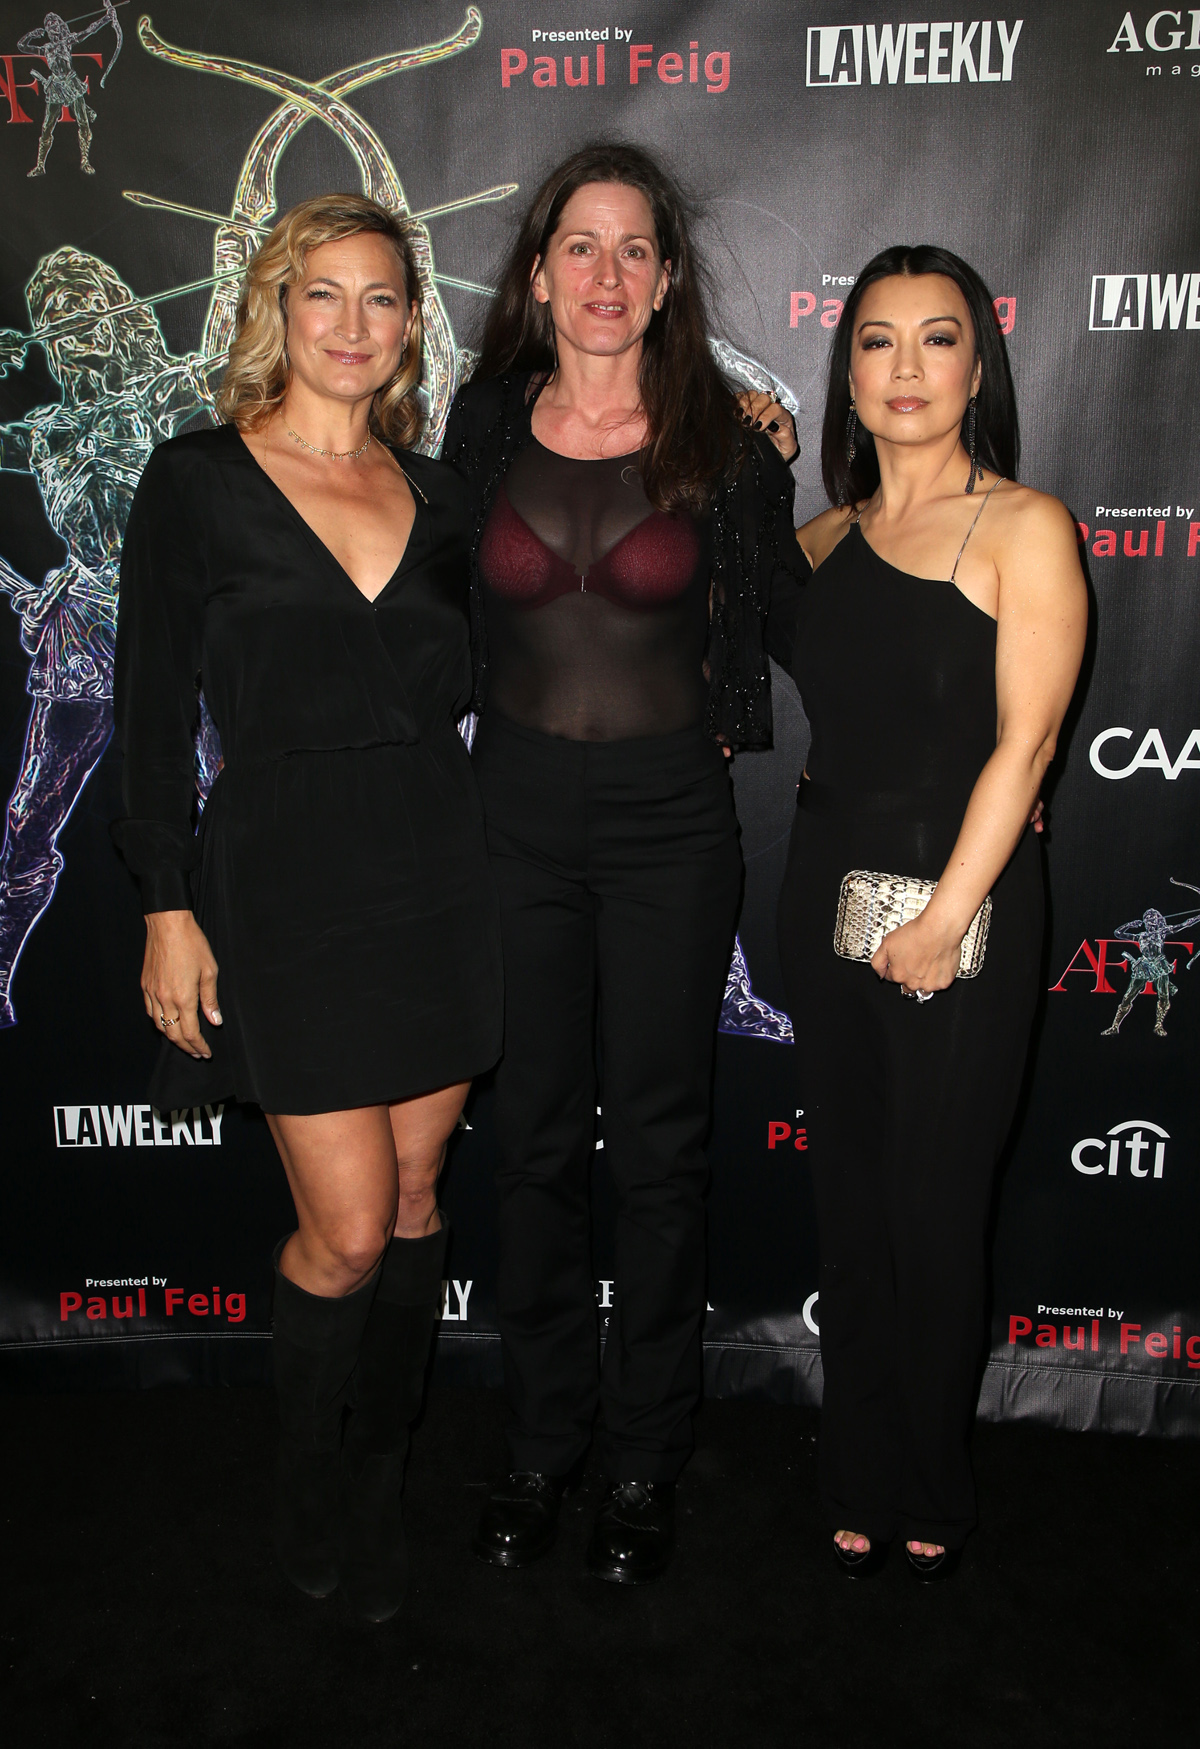 BEVERLY HILLS, CA - APRIL 26: Zoe Bell, Melanie Wise, Ming-Na Wen, at the 2018 Artemis Awards Gala at the Ahrya Fine Arts Theater in Beverly Hills, California on April 26, 2018. Credit: Faye Sadou/MediaPunch